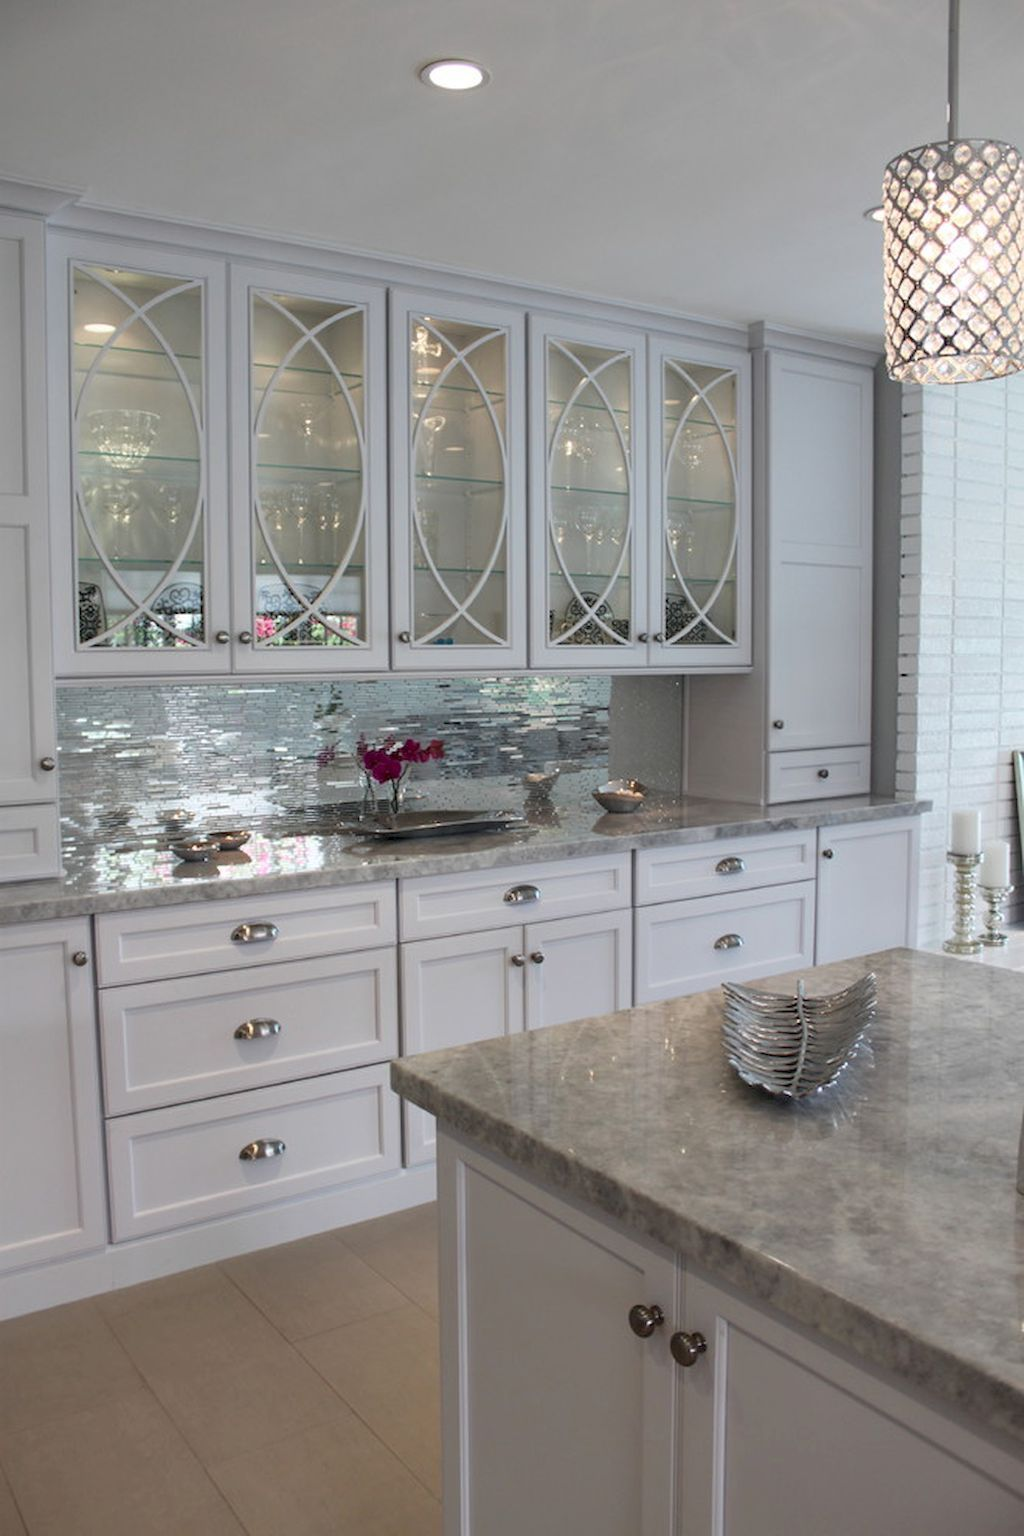 Kitchen Cabinet Doors Hull Pin By Sherri Partlo Shore On Kitchens Kitchen Cabinets